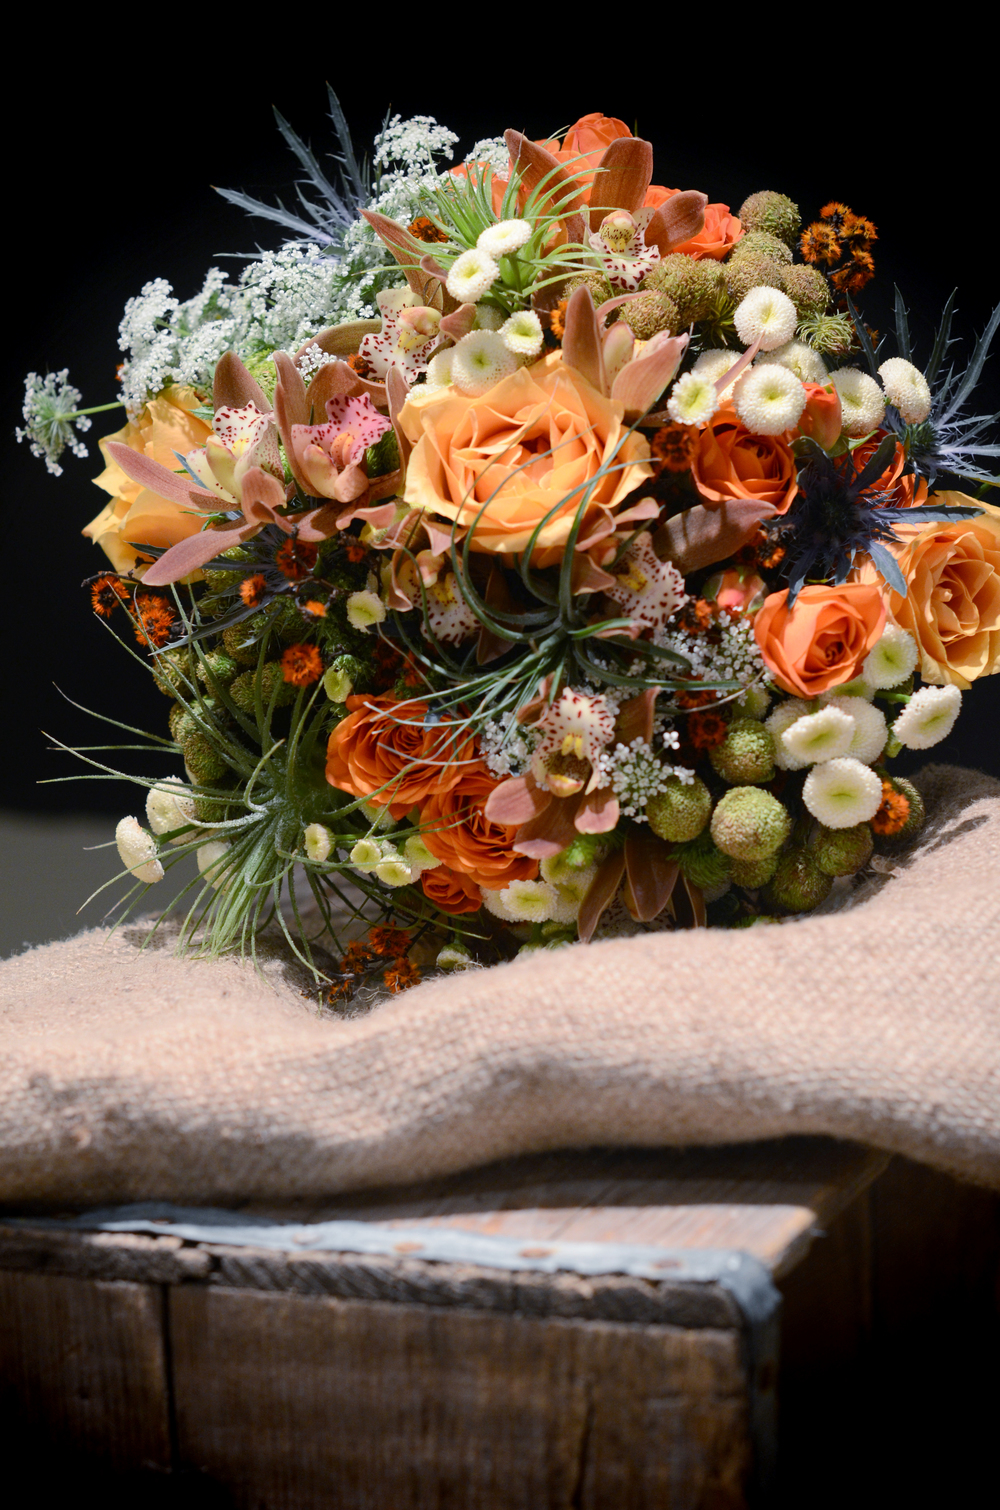 Fall Bridal bouquet by Floral Design by Lili, Vancouver Wedding Florist, British Columbia. Image by Acacia Anne Photography